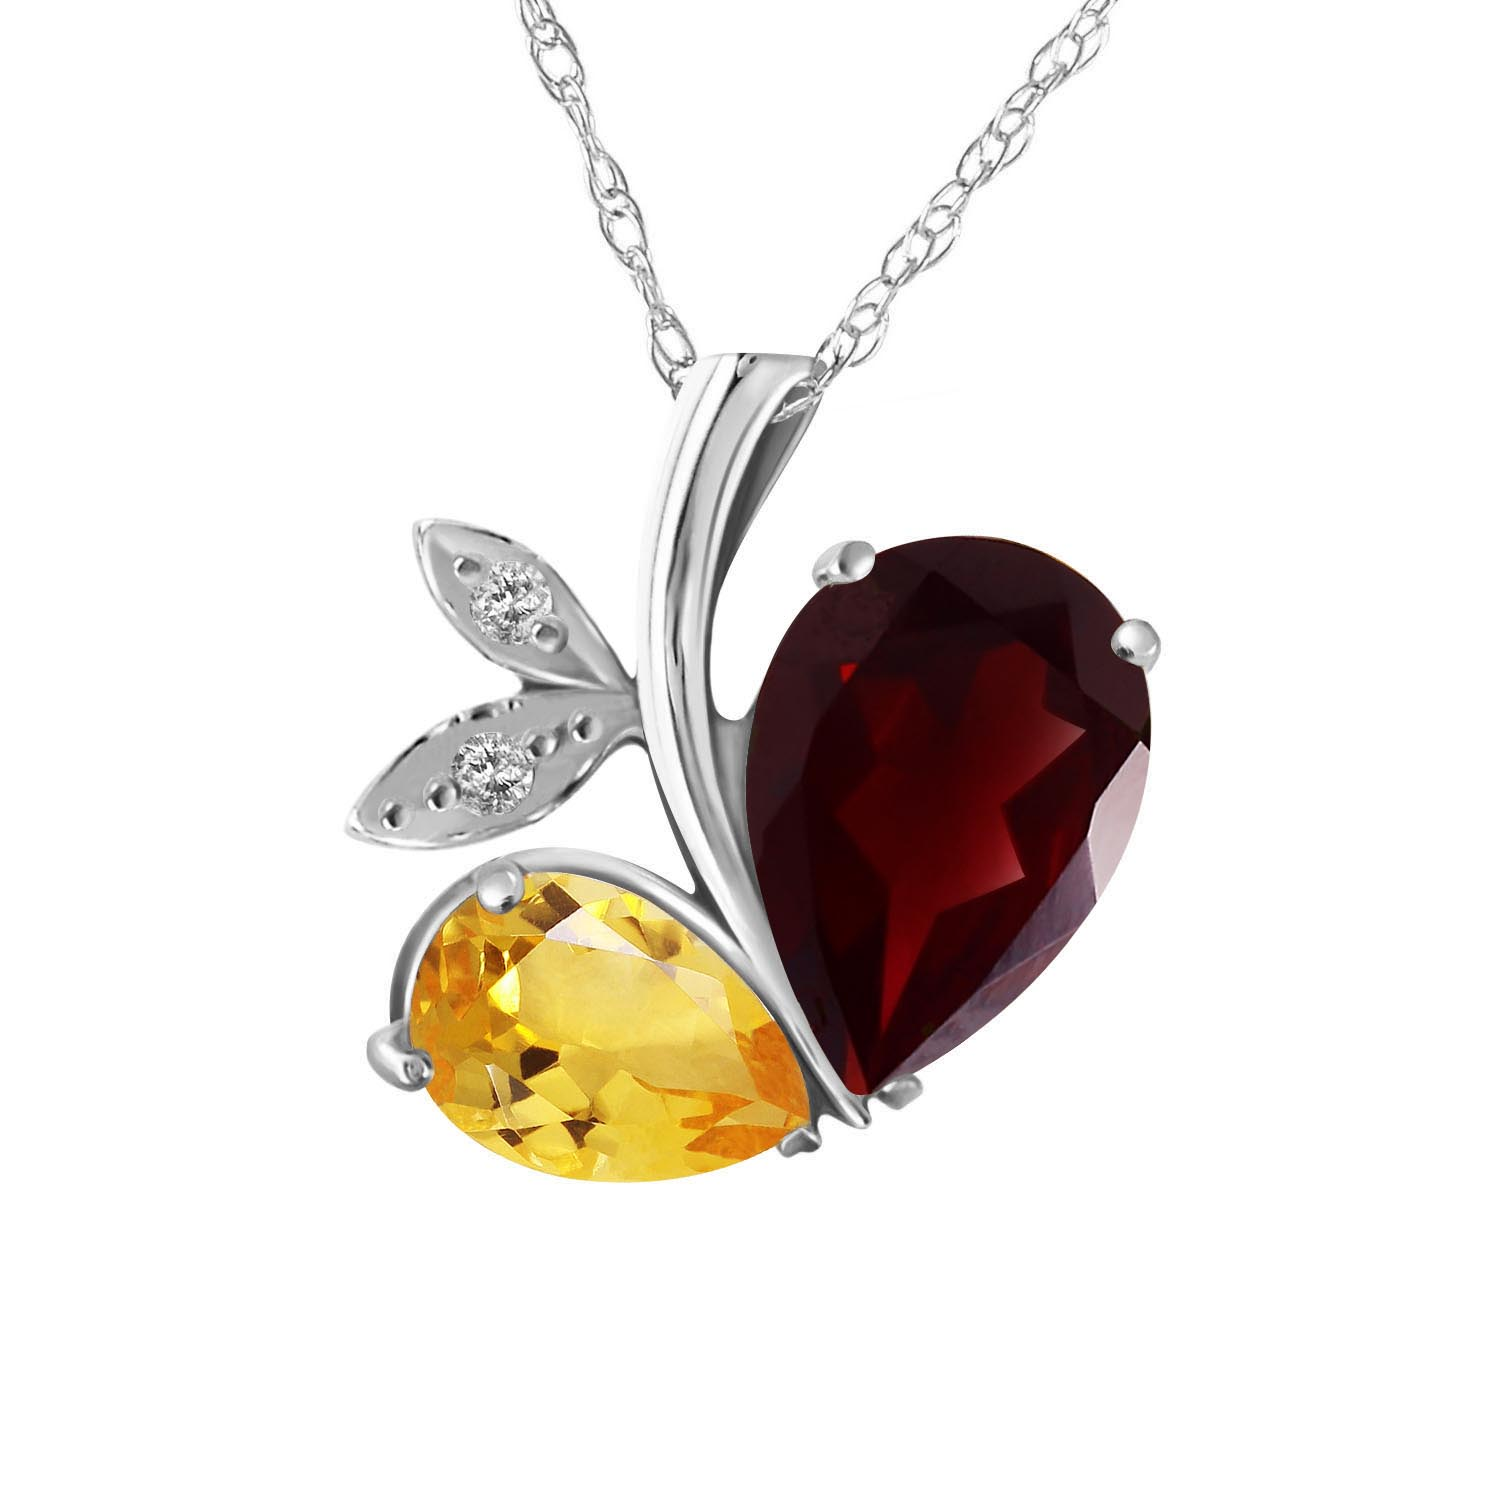 Bargain Garnet and Diamond Eternal Pendant Necklace 5.0ctw in 9ct White Gold Stockists